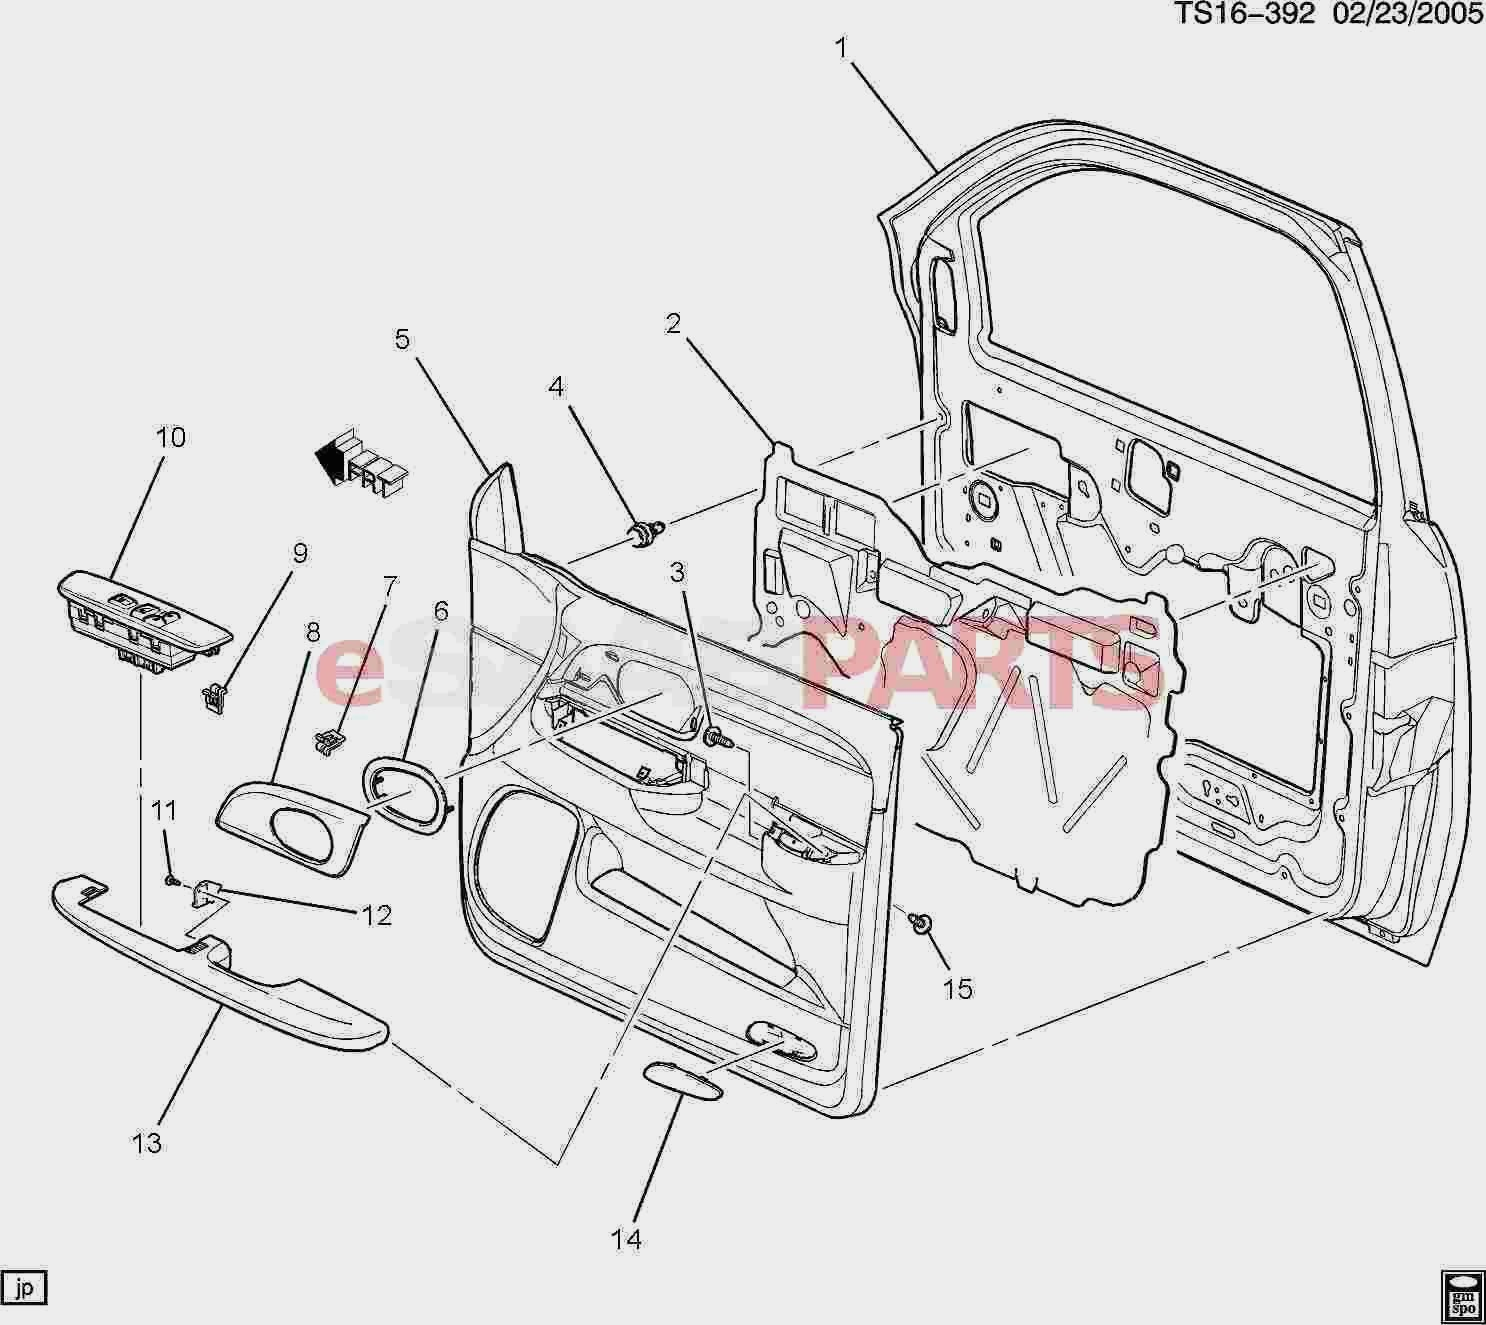 Parts Of Car Engine Diagram Saab Usa Parts Of Parts Of Car Engine Diagram Automobile Safety